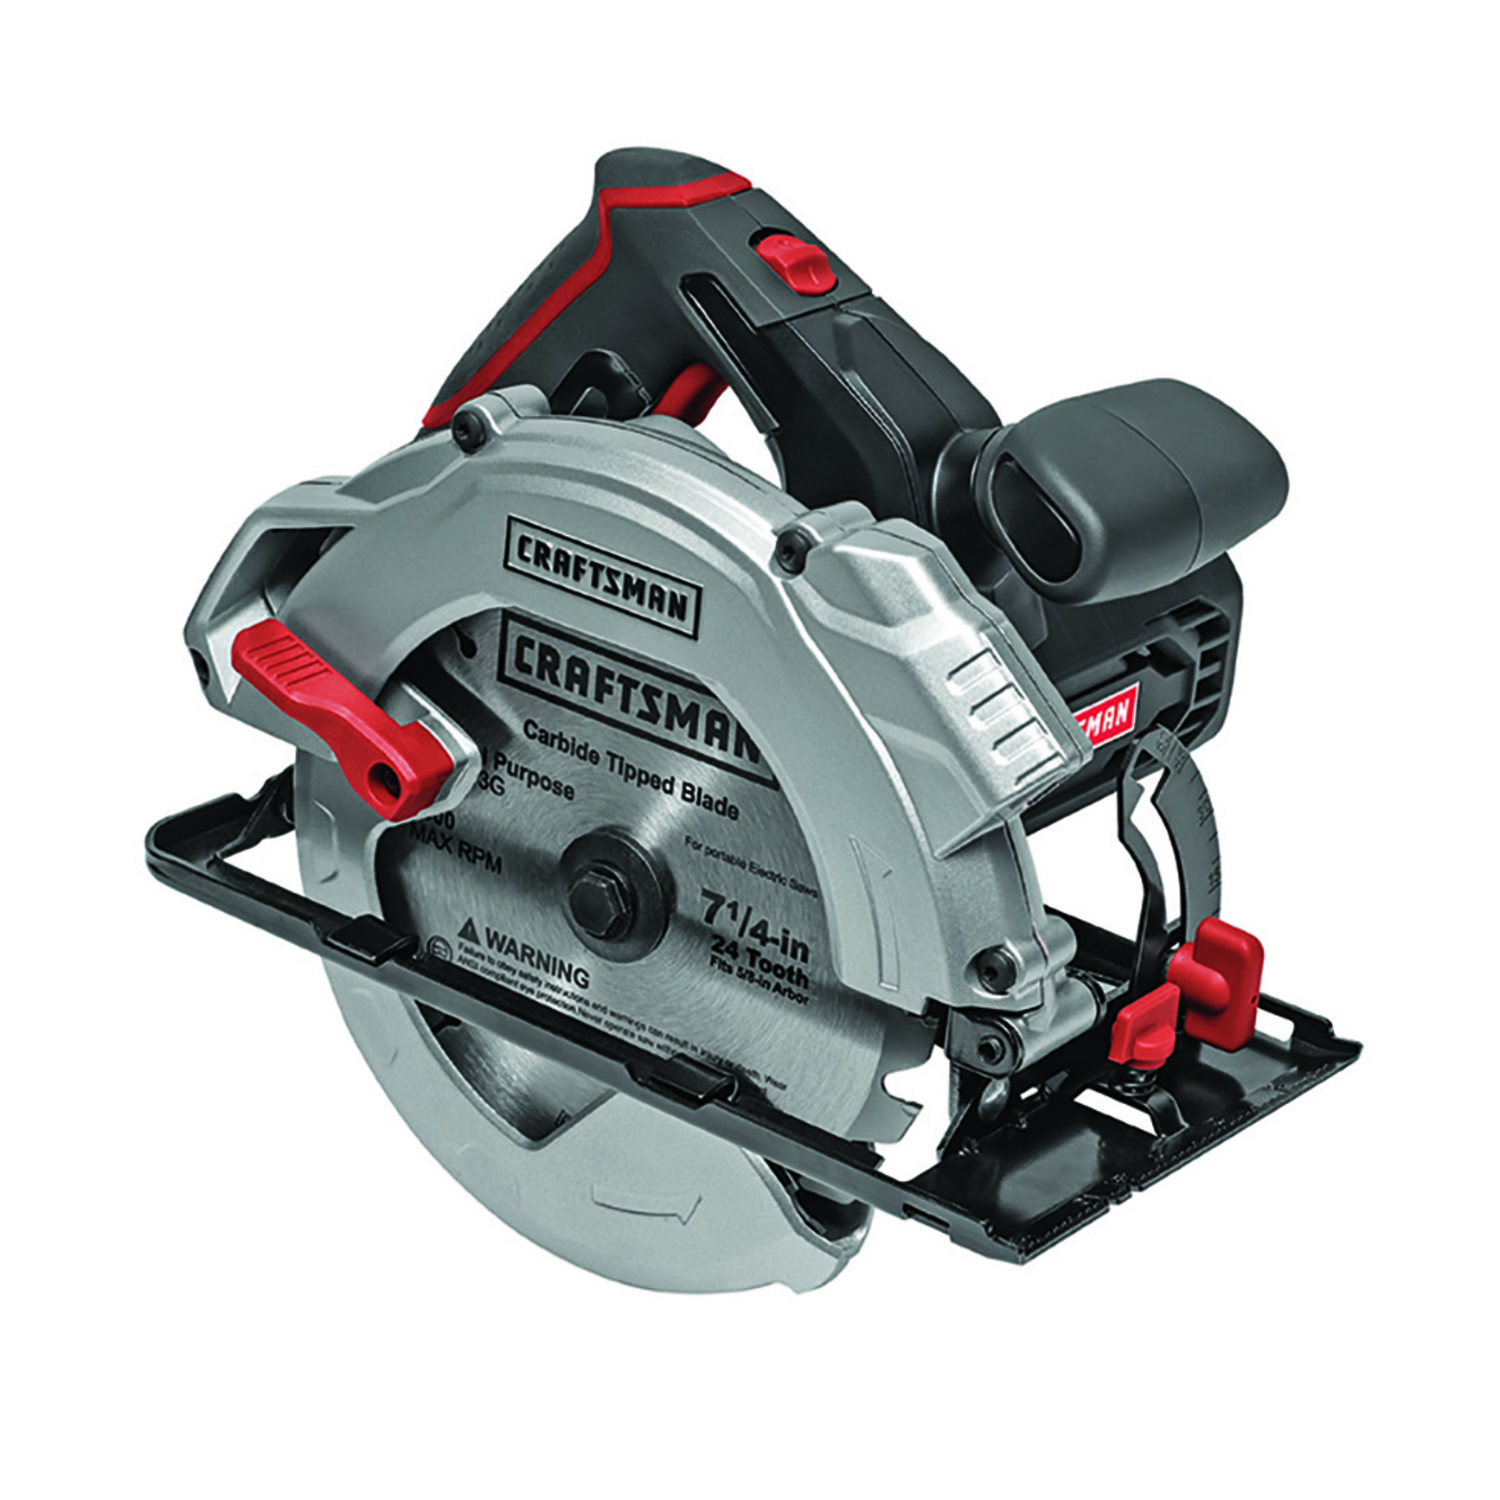 Craftsman 7 14 in 13 amps circular saw 5500 rpm corded ace hardware craftsman 7 14 in 13 amps circular saw 5500 rpm corded greentooth Images